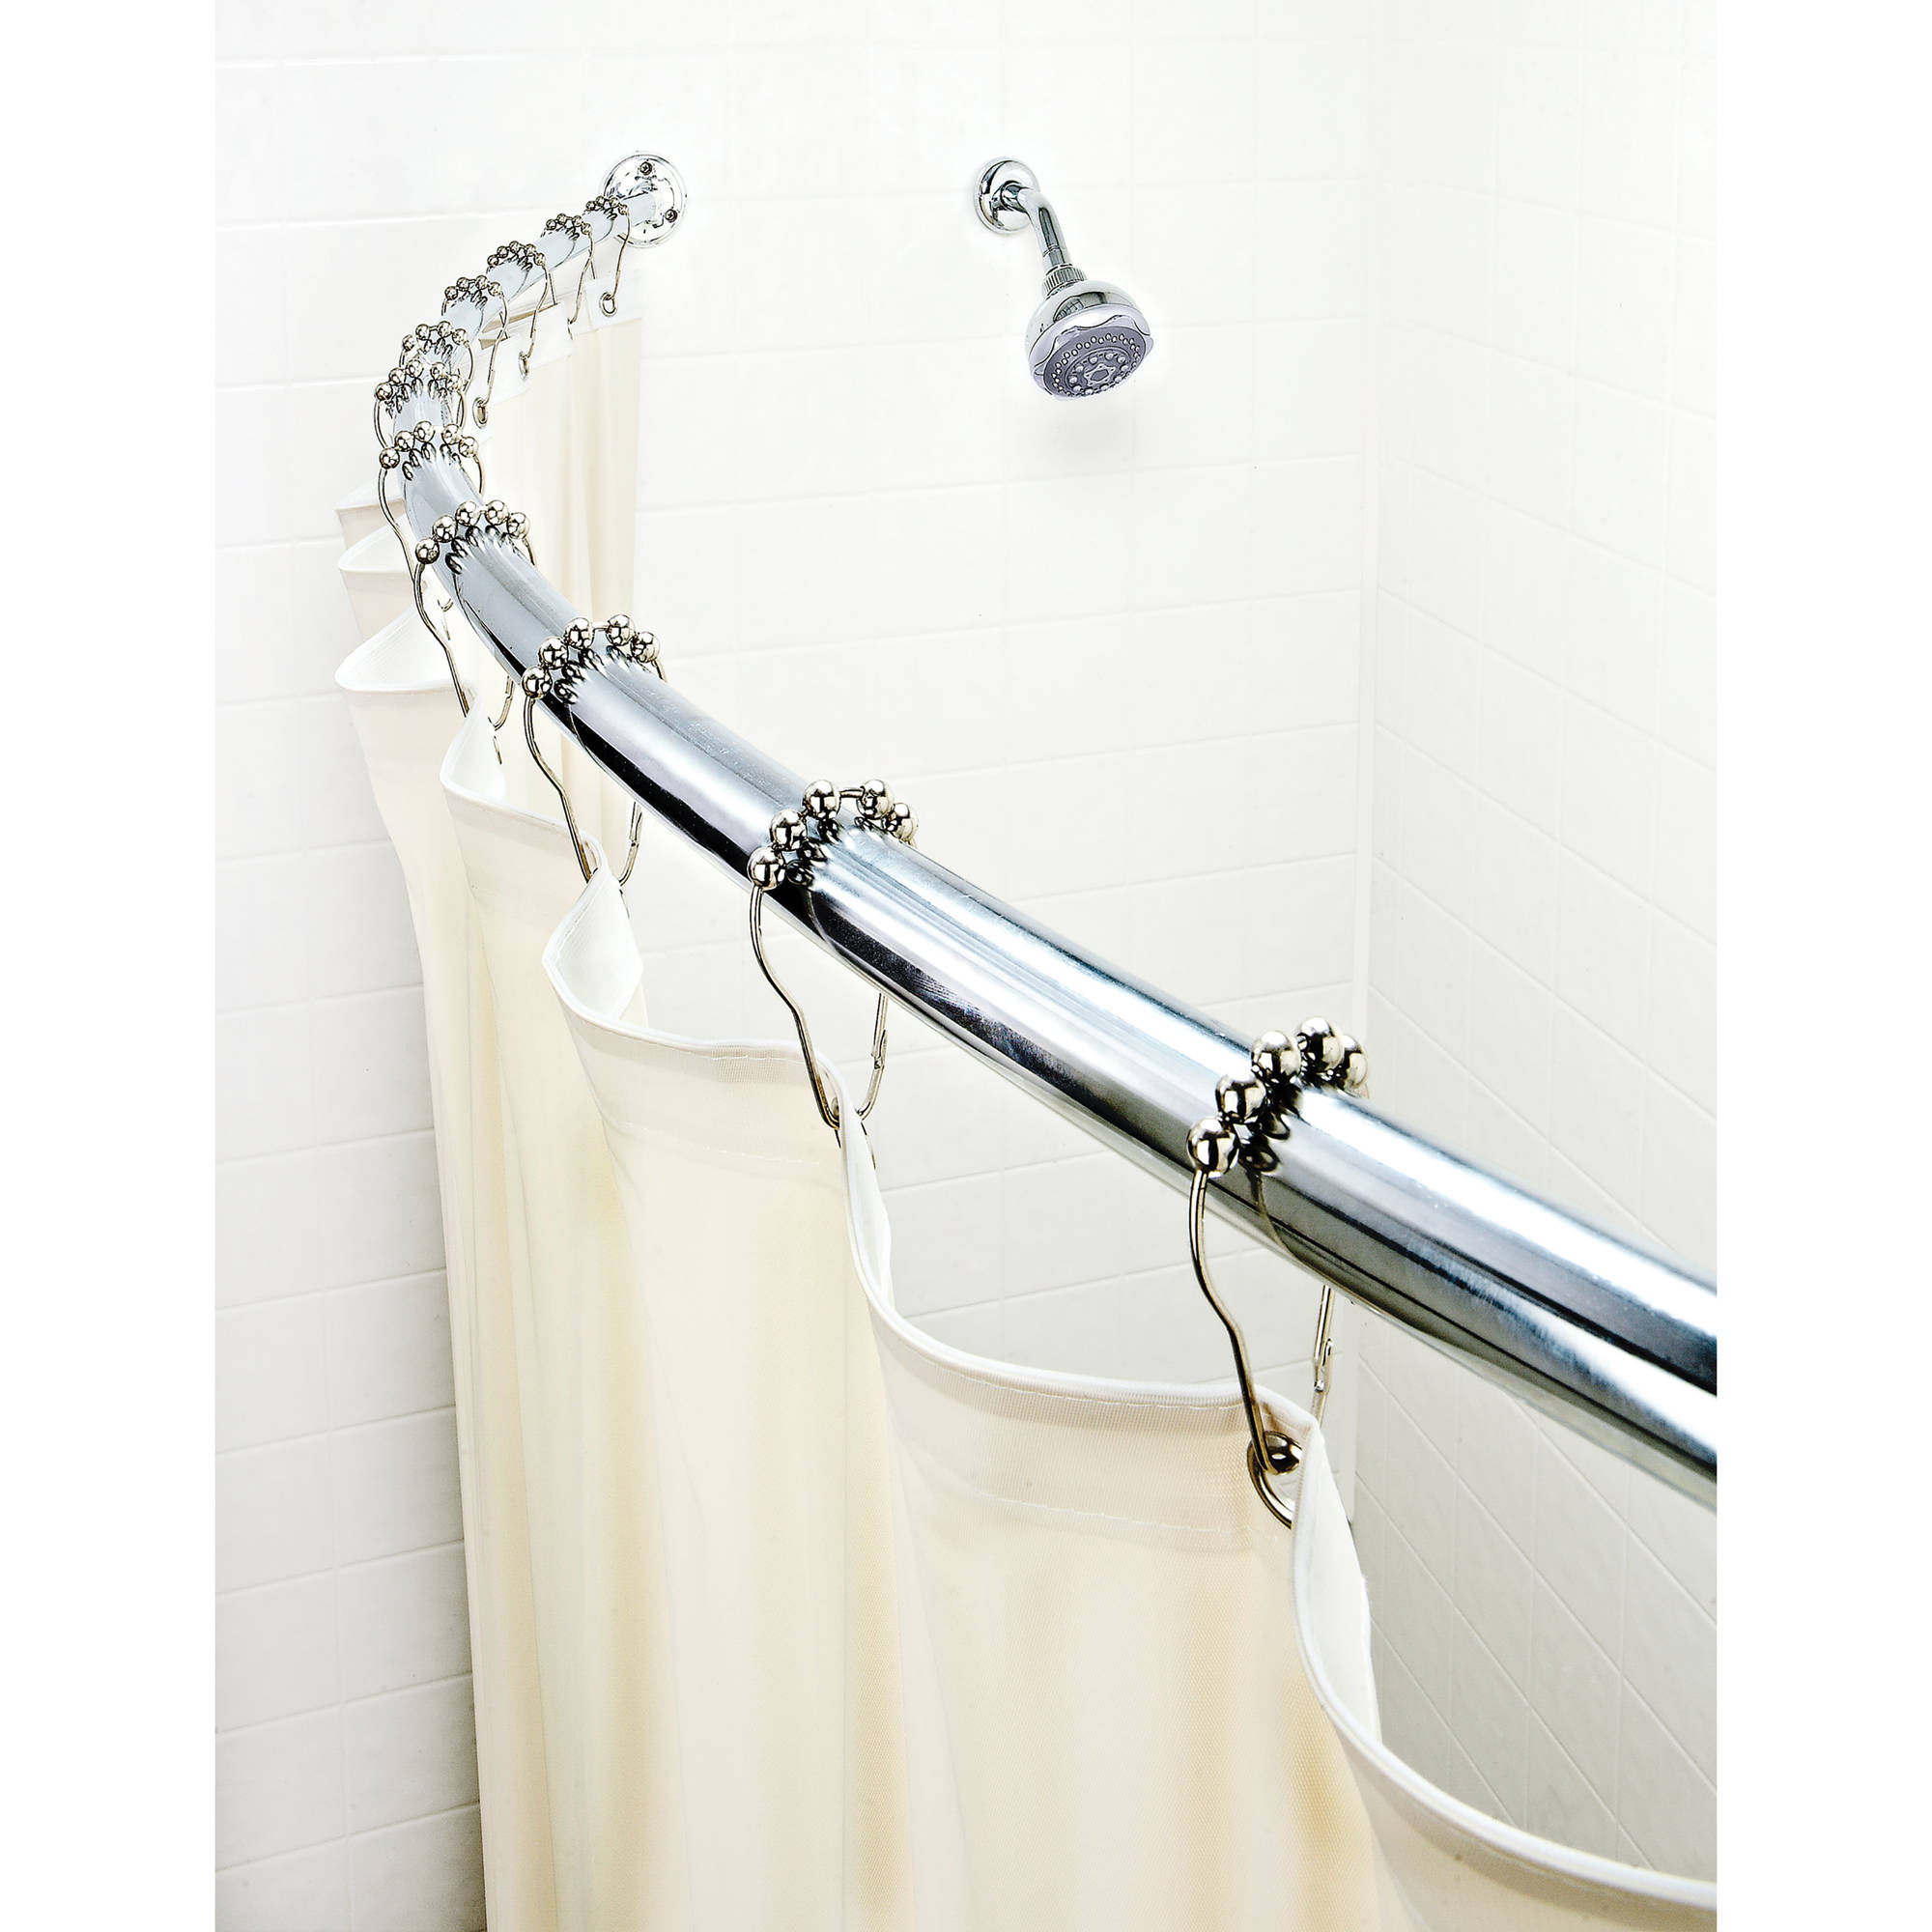 18 24 Inch Curtain Rods Barclay Rectangular Shower Rod 48 Quot X 24 Quot Walmart